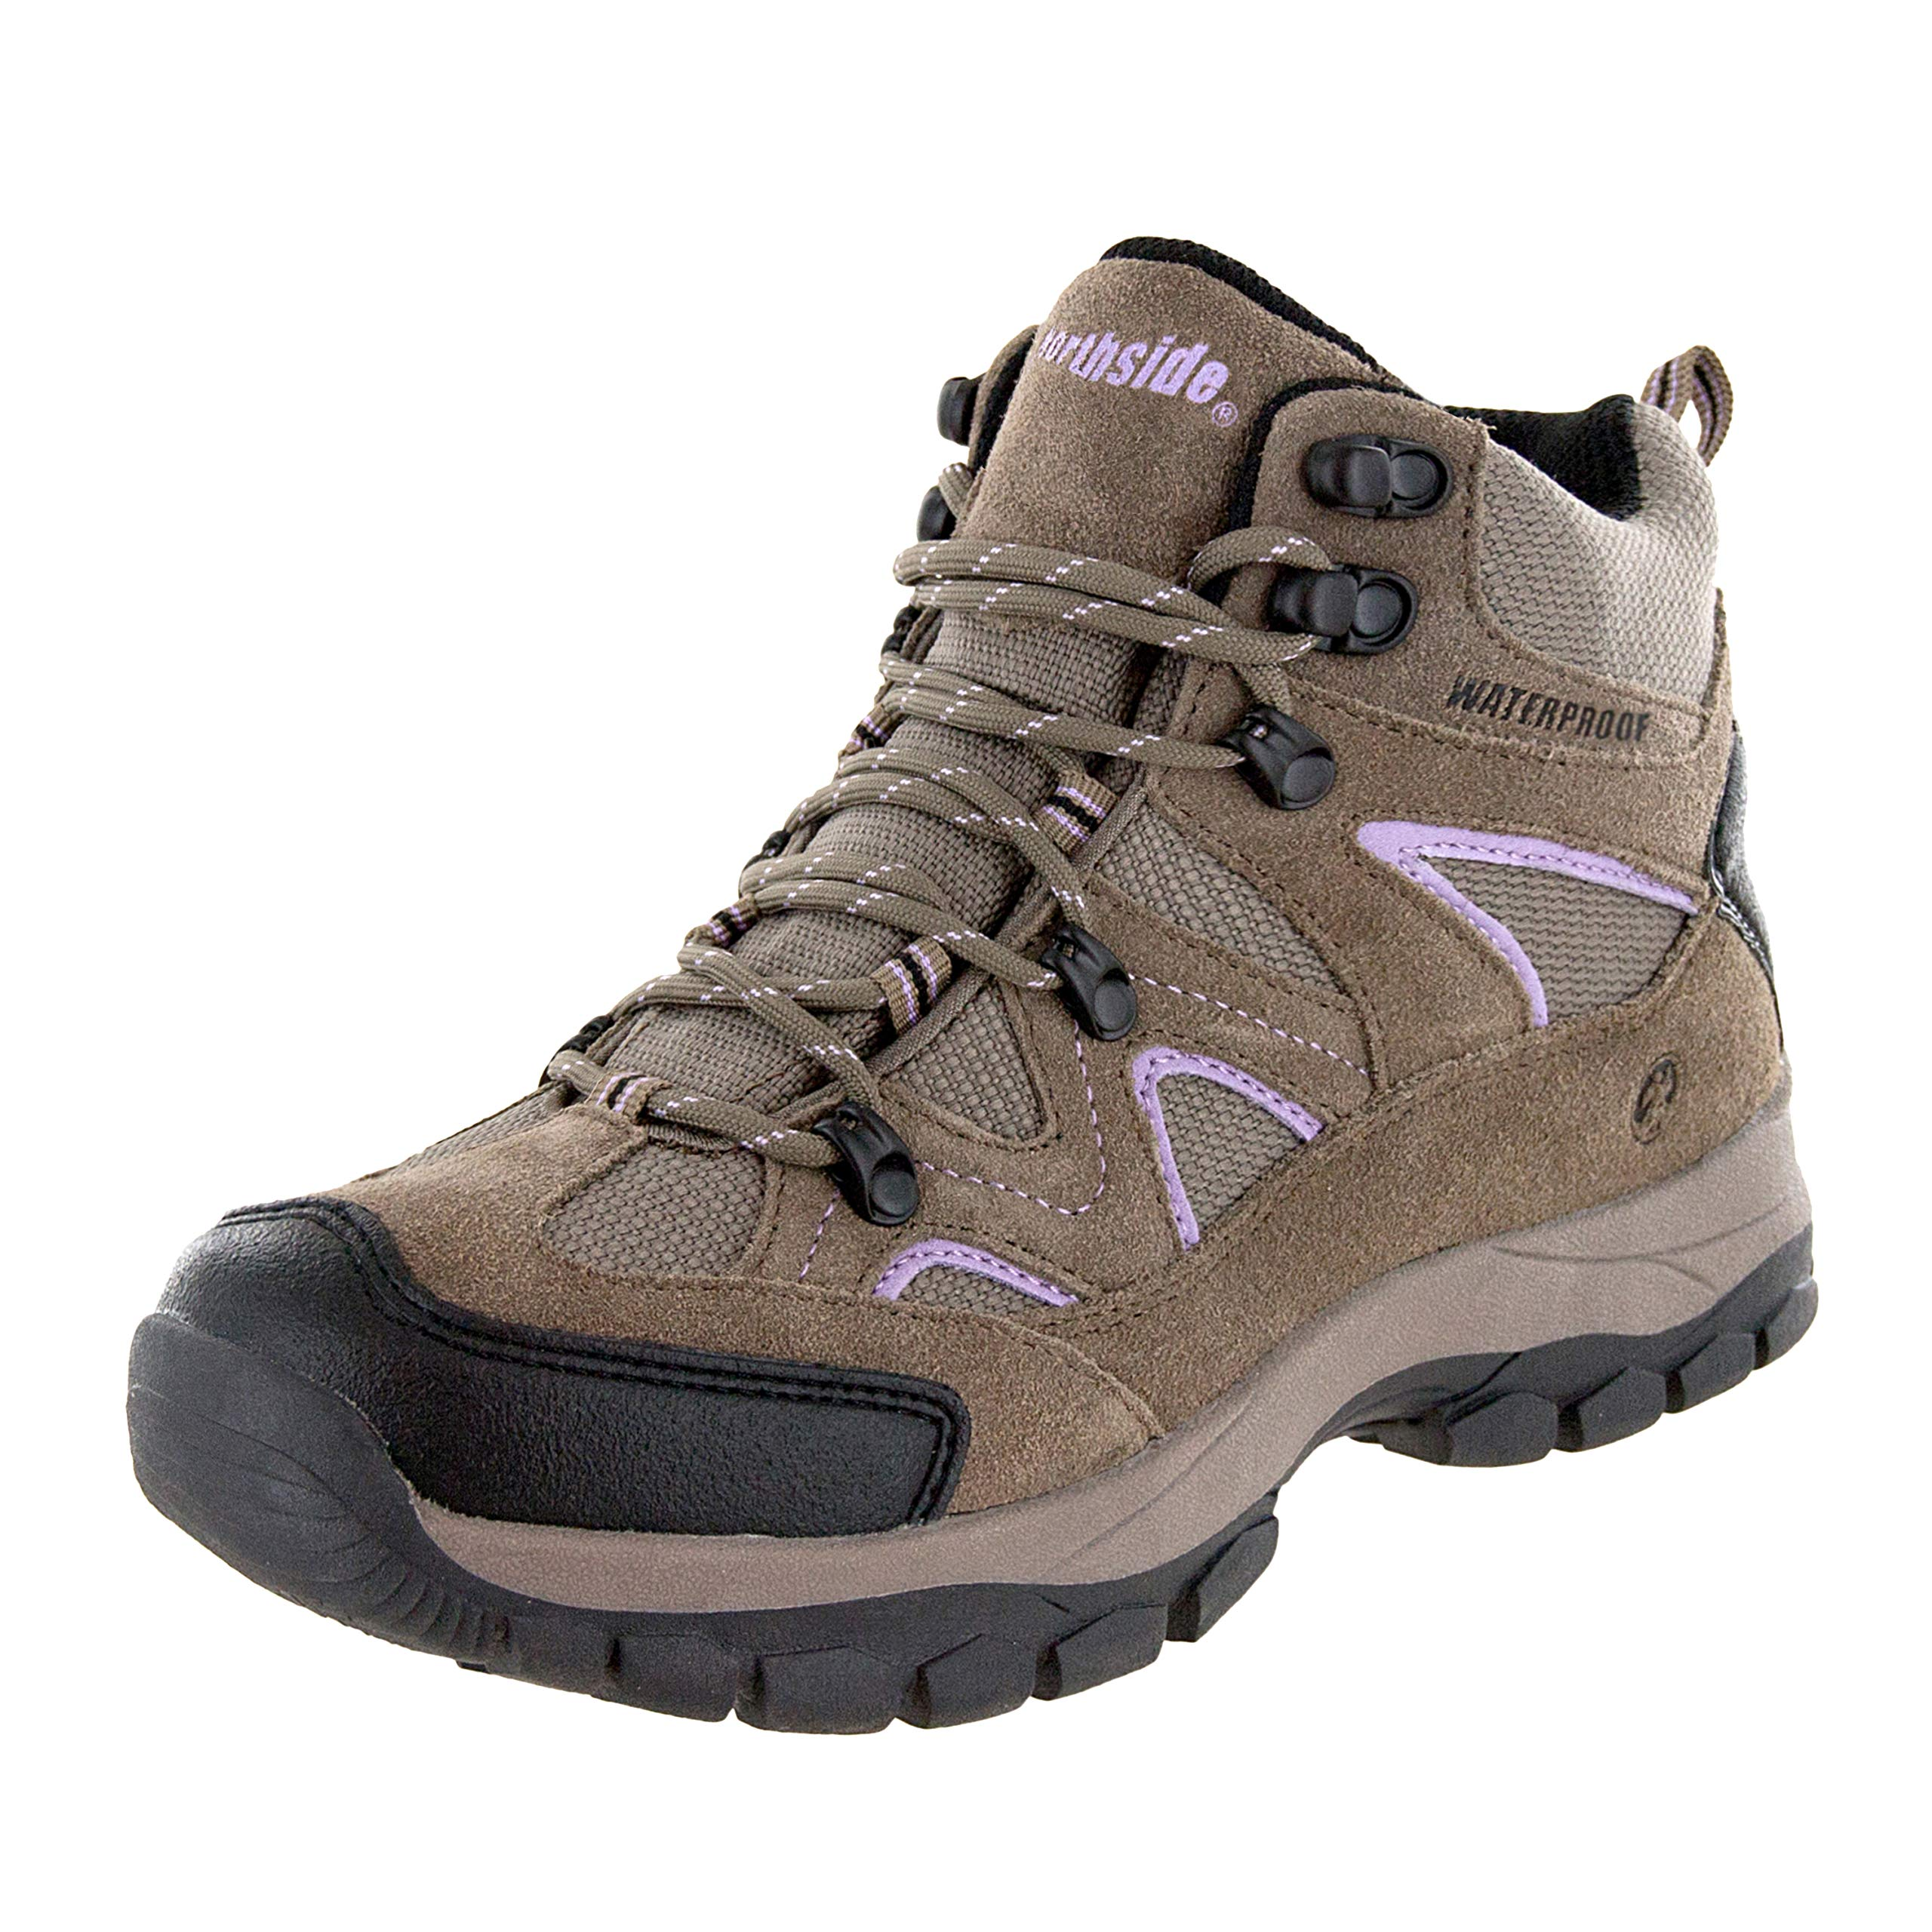 Northside Women's Snohomish-W Hiking Boot, Tan/Periwinkle, 8 M US by Northside